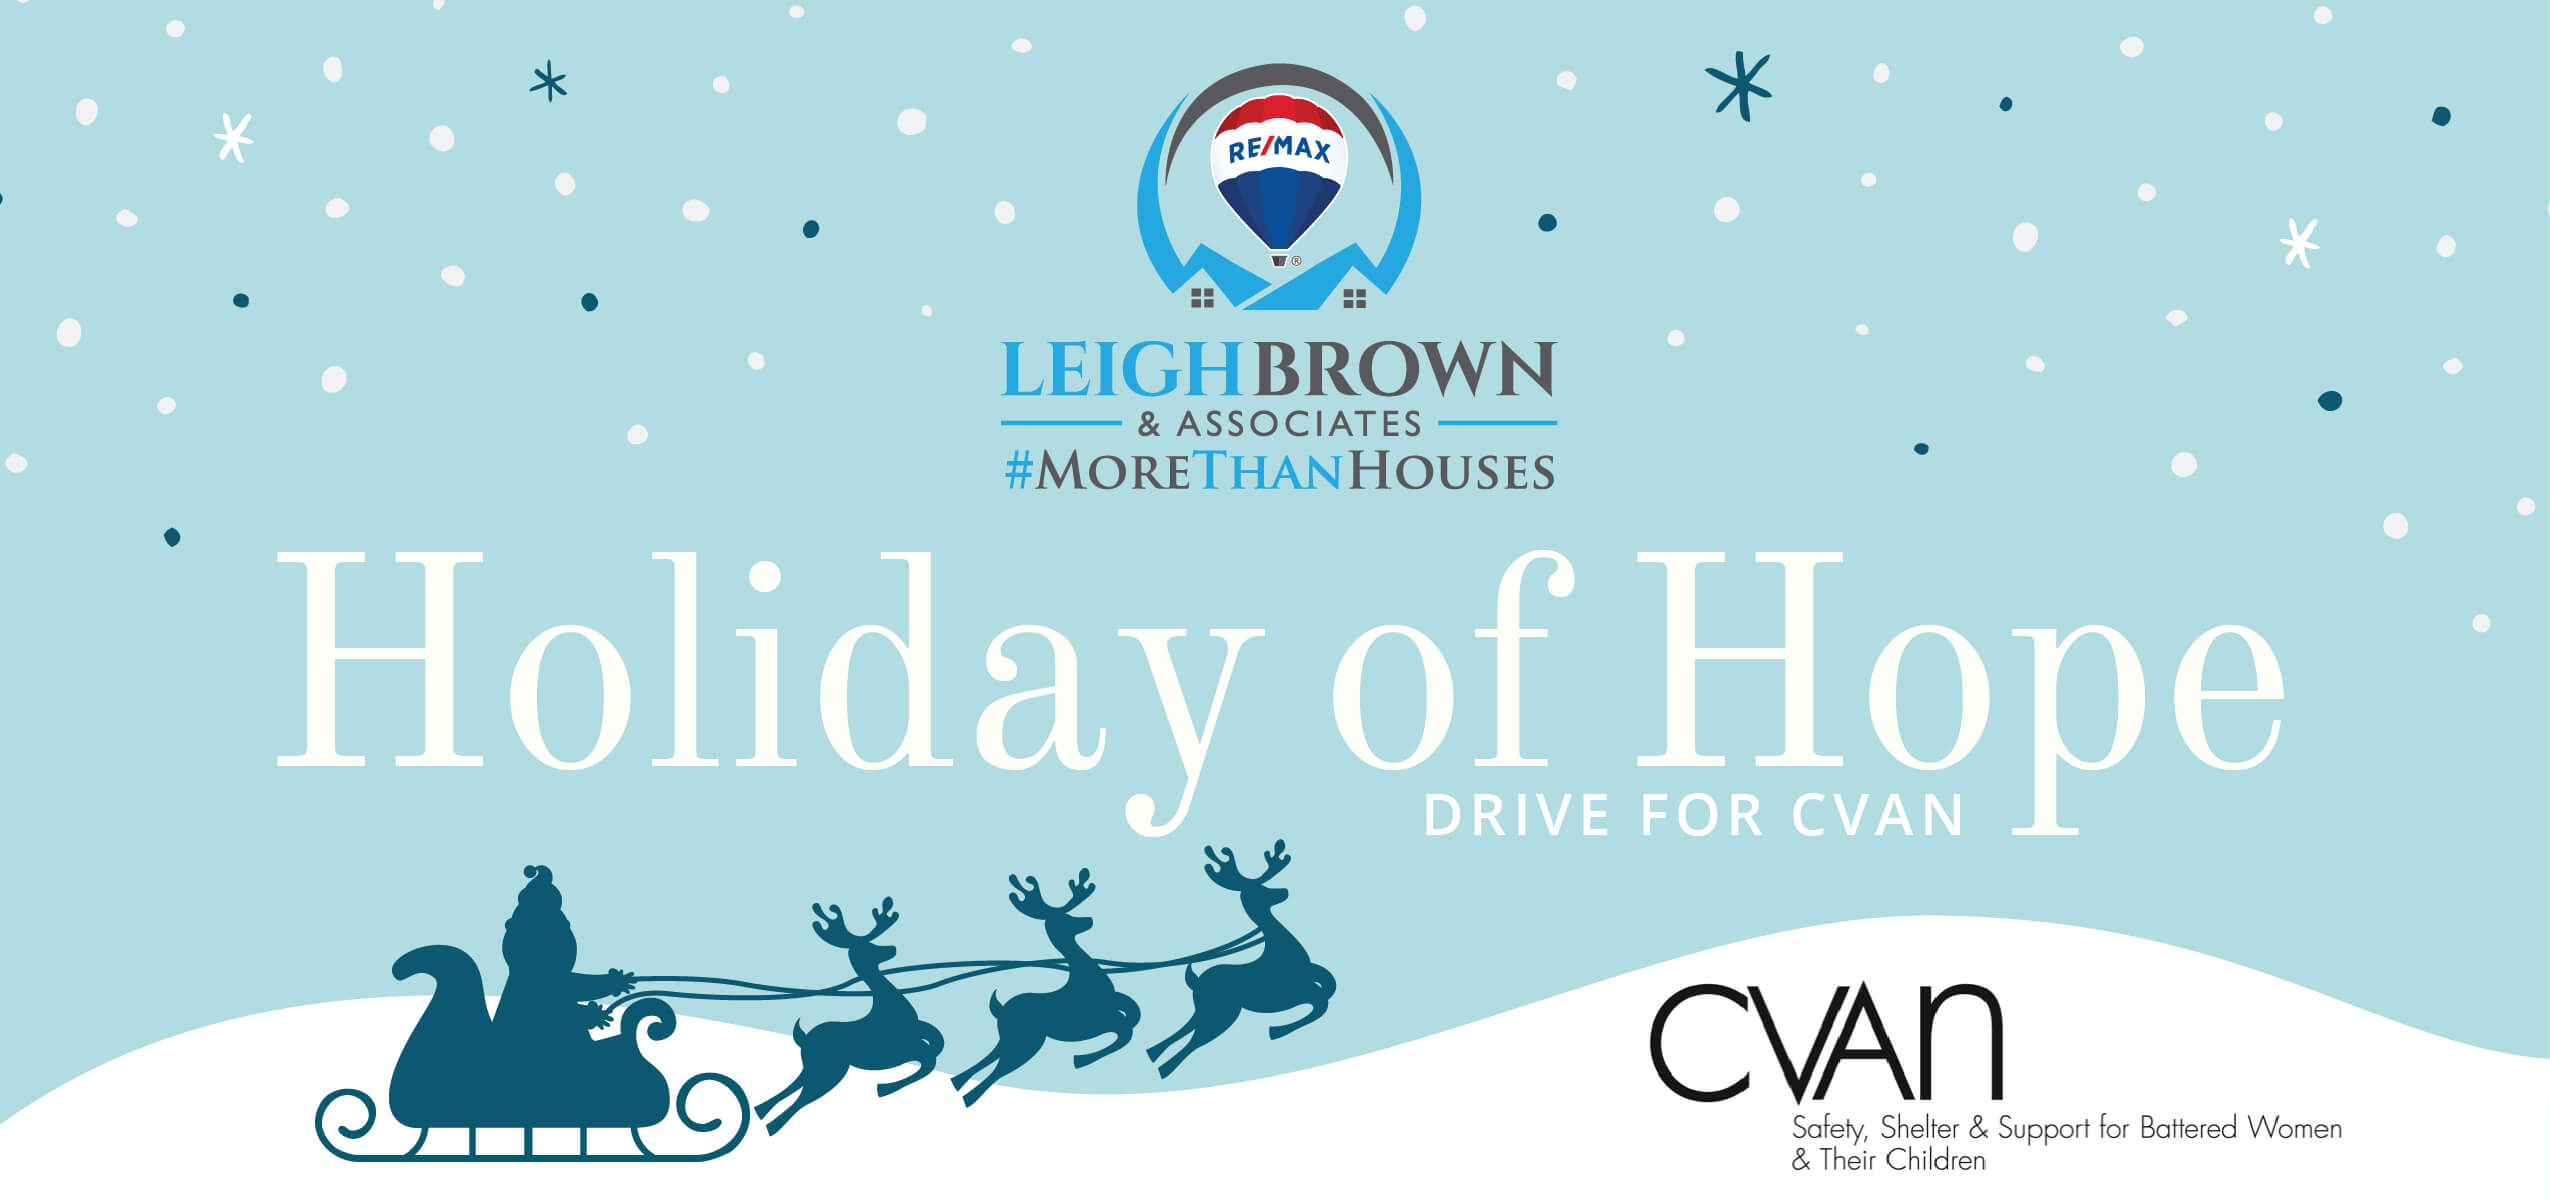 Holiday of Hope Drive for CVAN